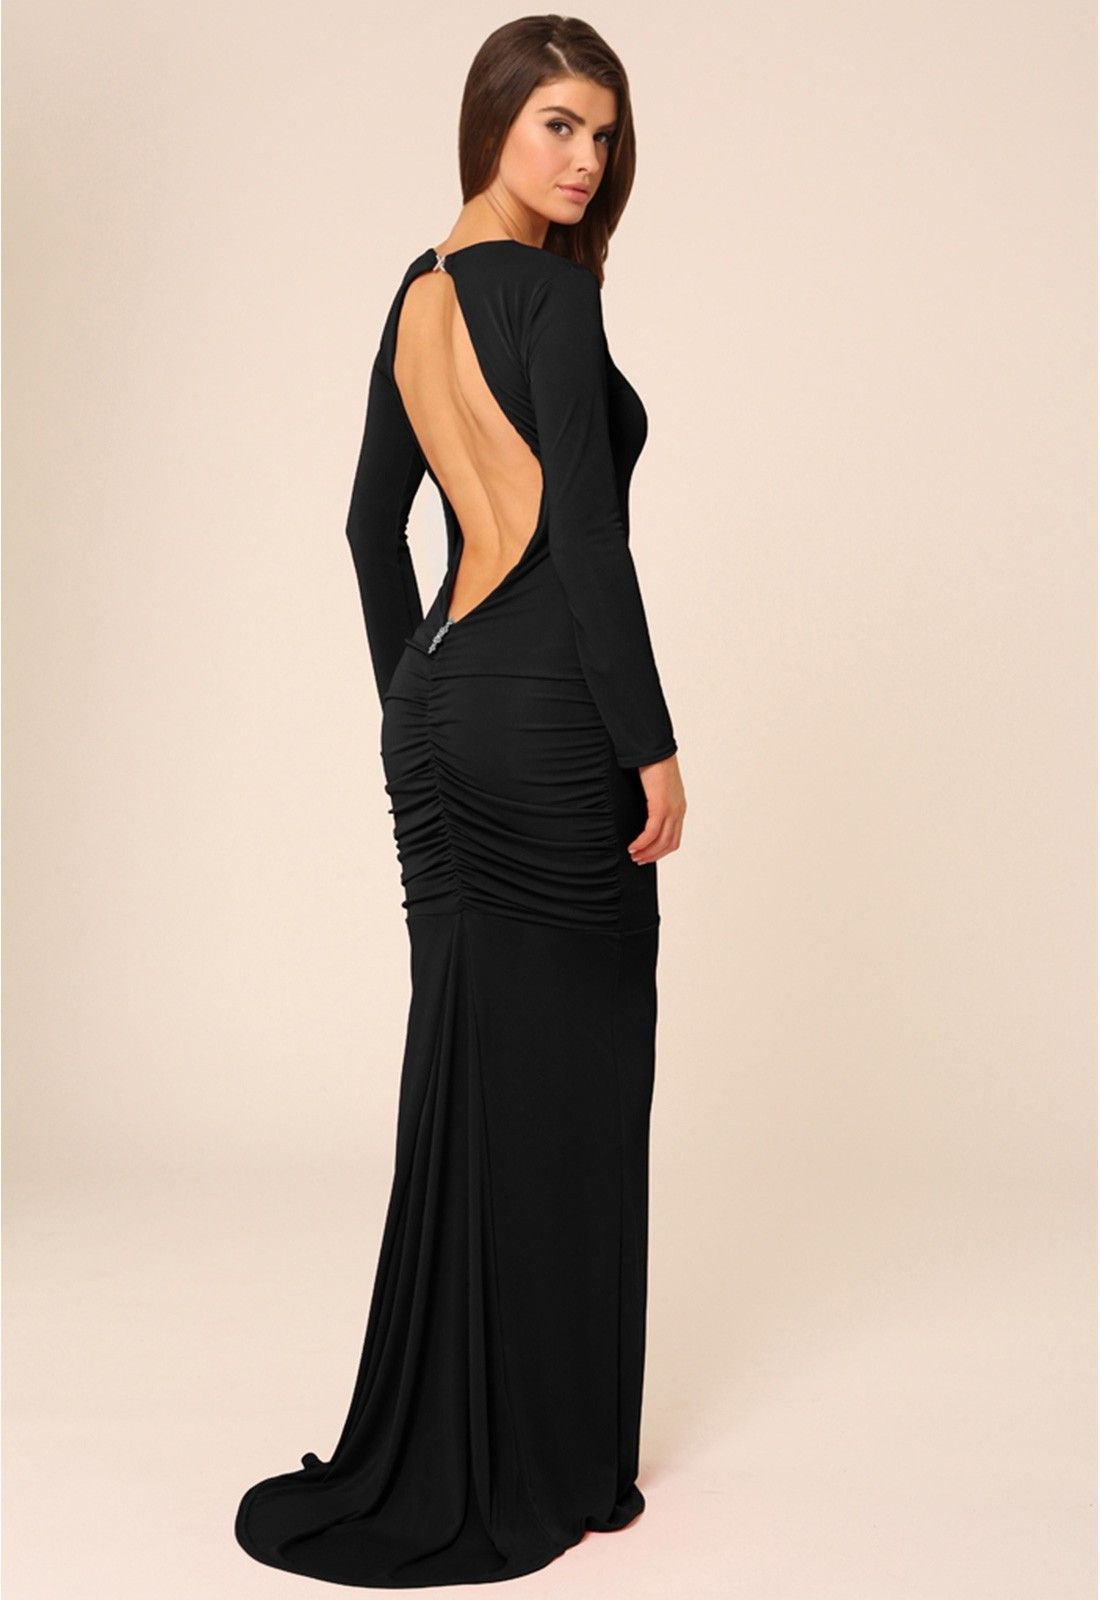 Make an understated statement in this stunning bella gown by honor